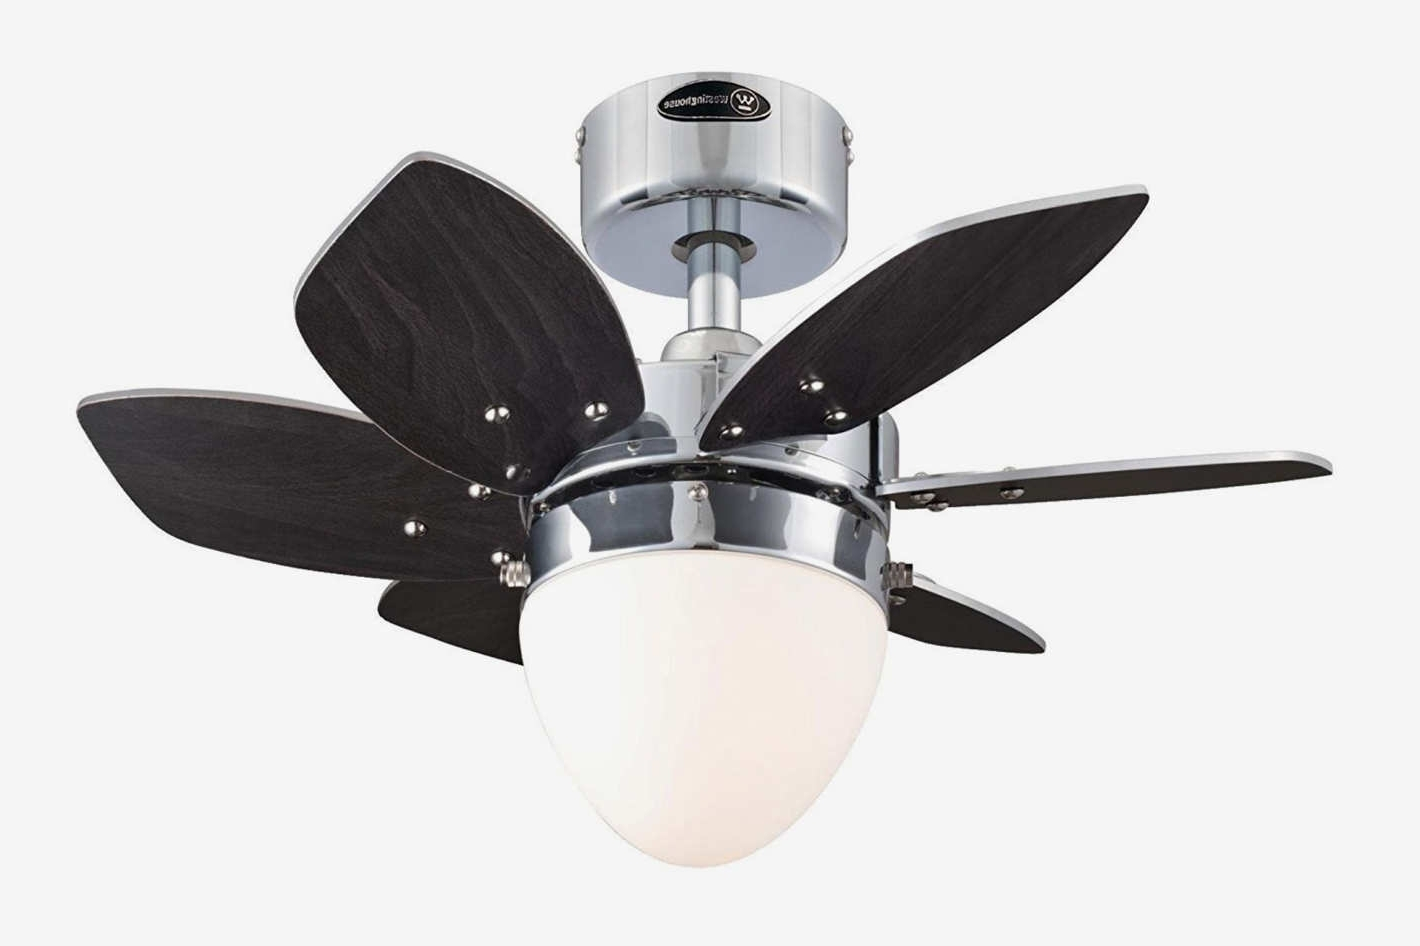 Outdoor Ceiling Fan With Light Under $100 Inside Well Liked The 9 Best Ceiling Fans On Amazon 2018 (Gallery 15 of 20)